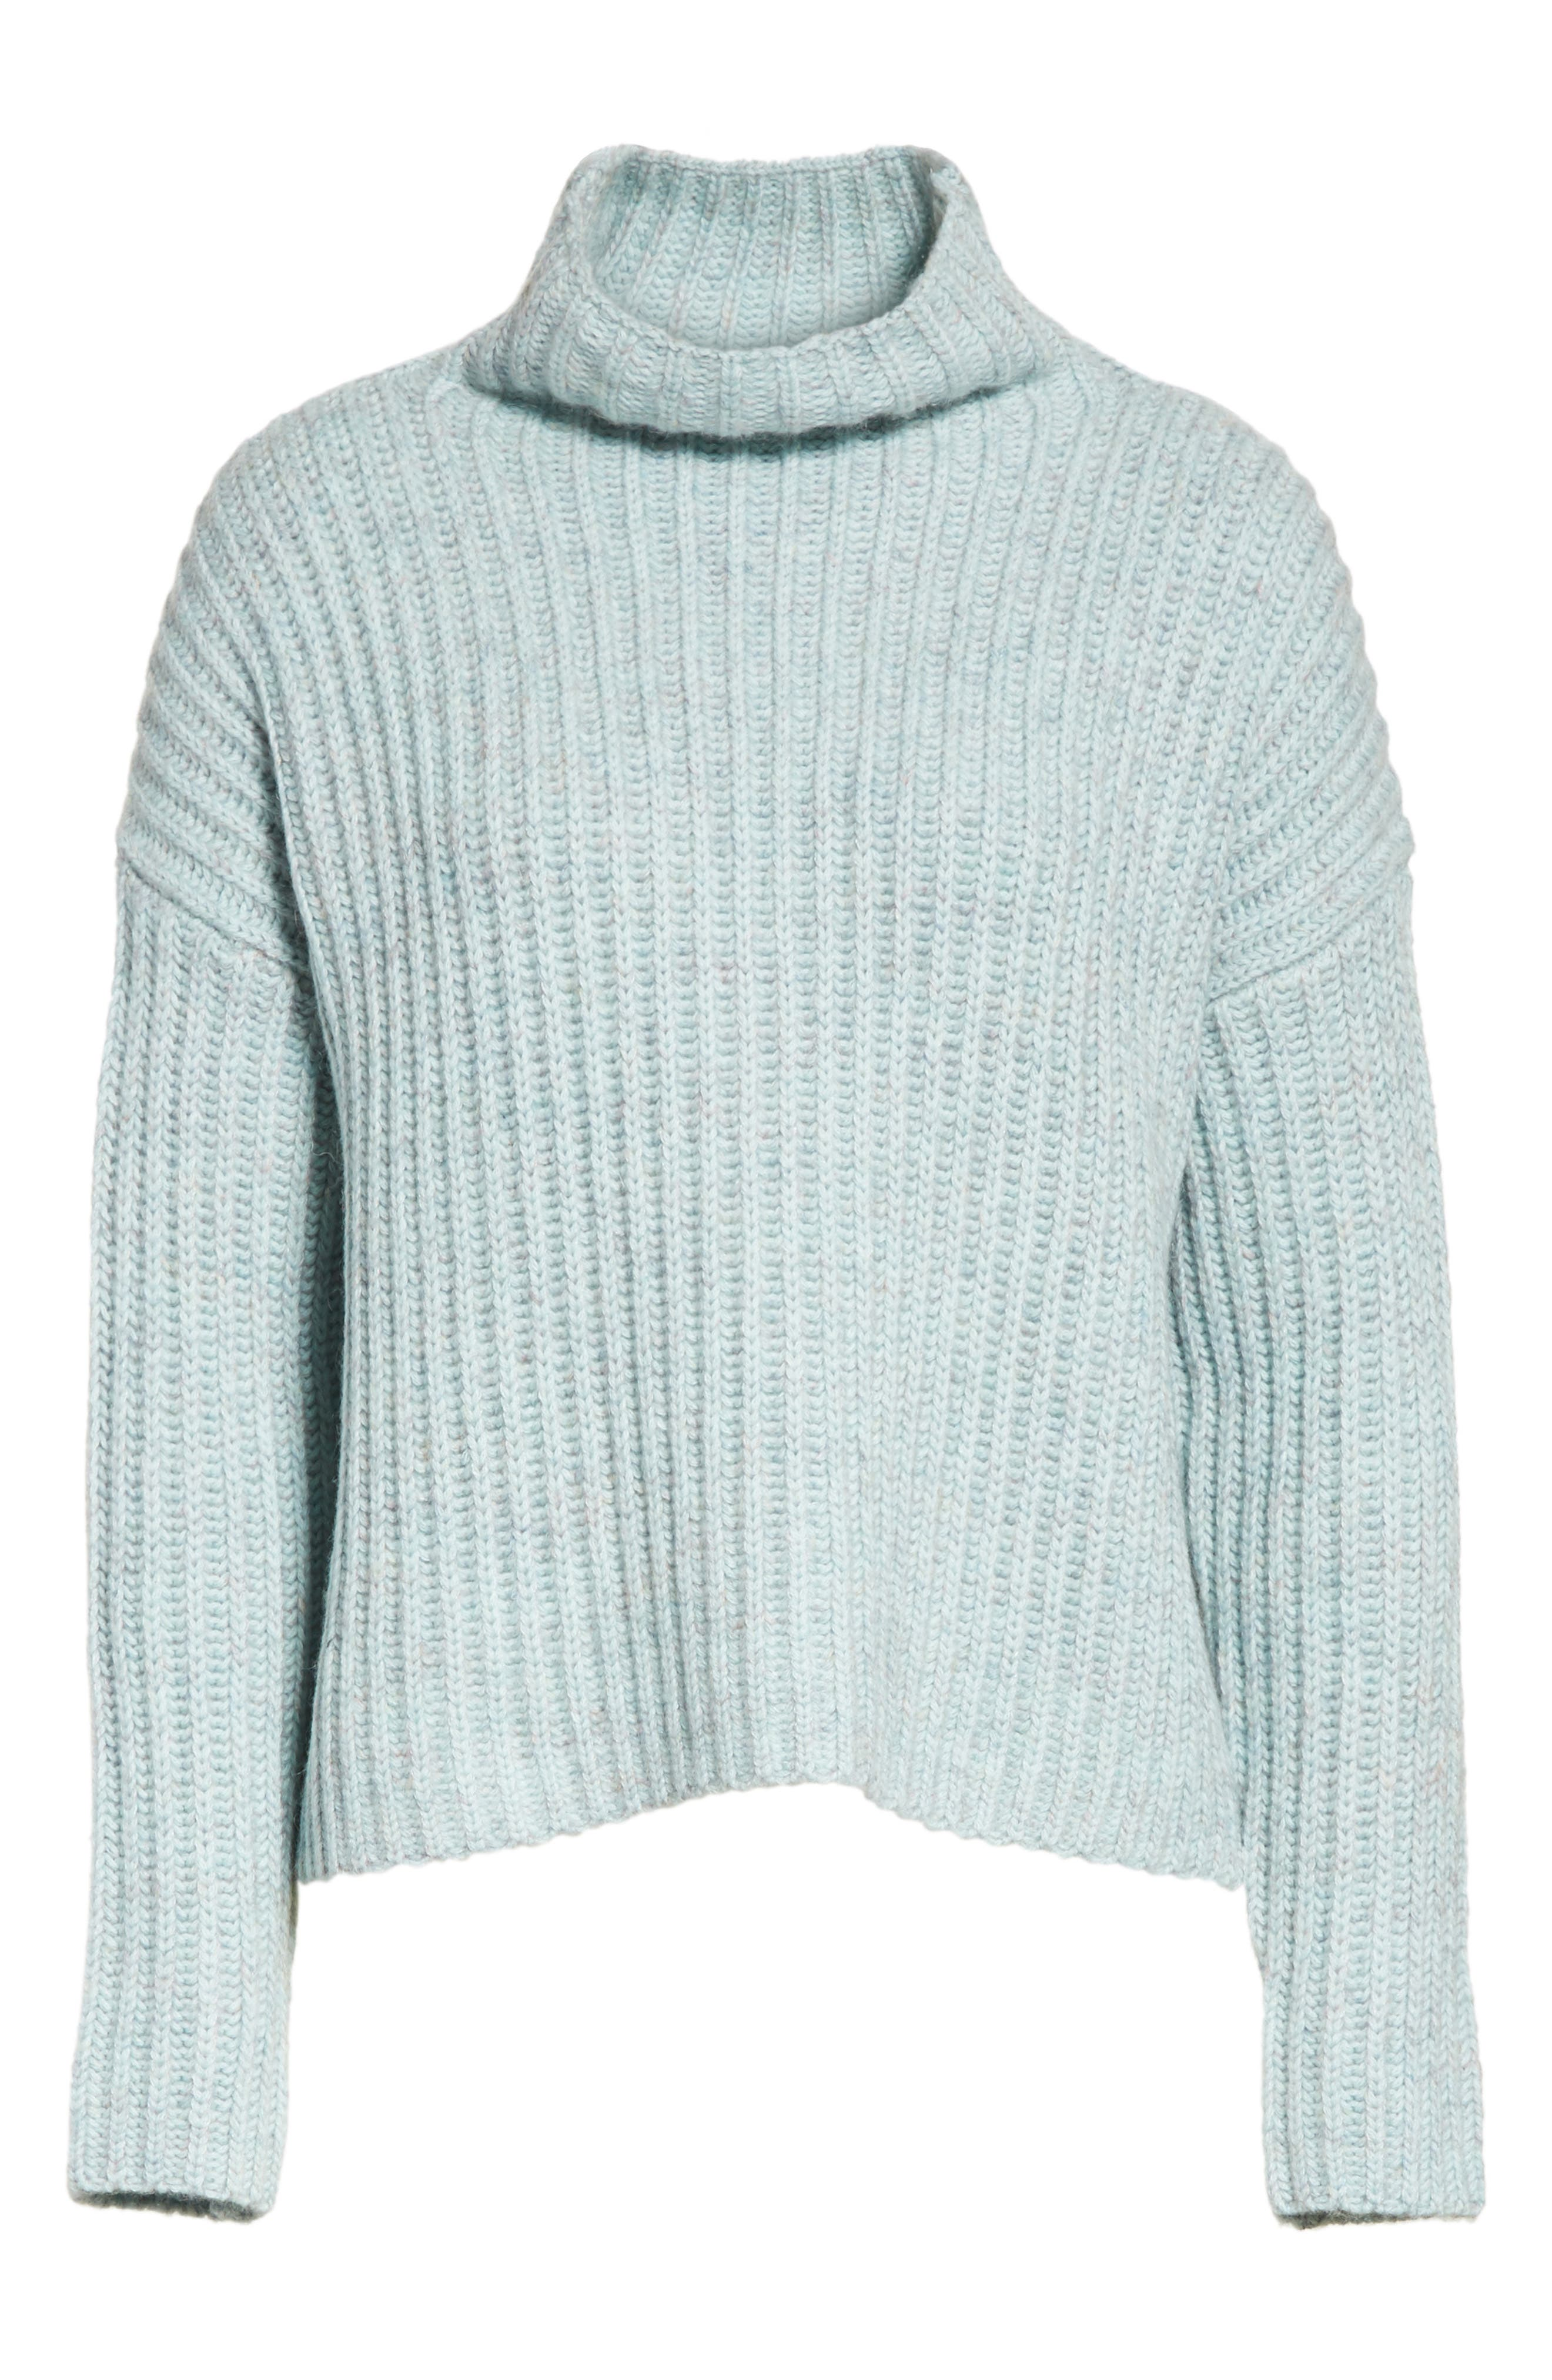 Ribbed Turtleneck Sweater,                             Alternate thumbnail 6, color,                             461